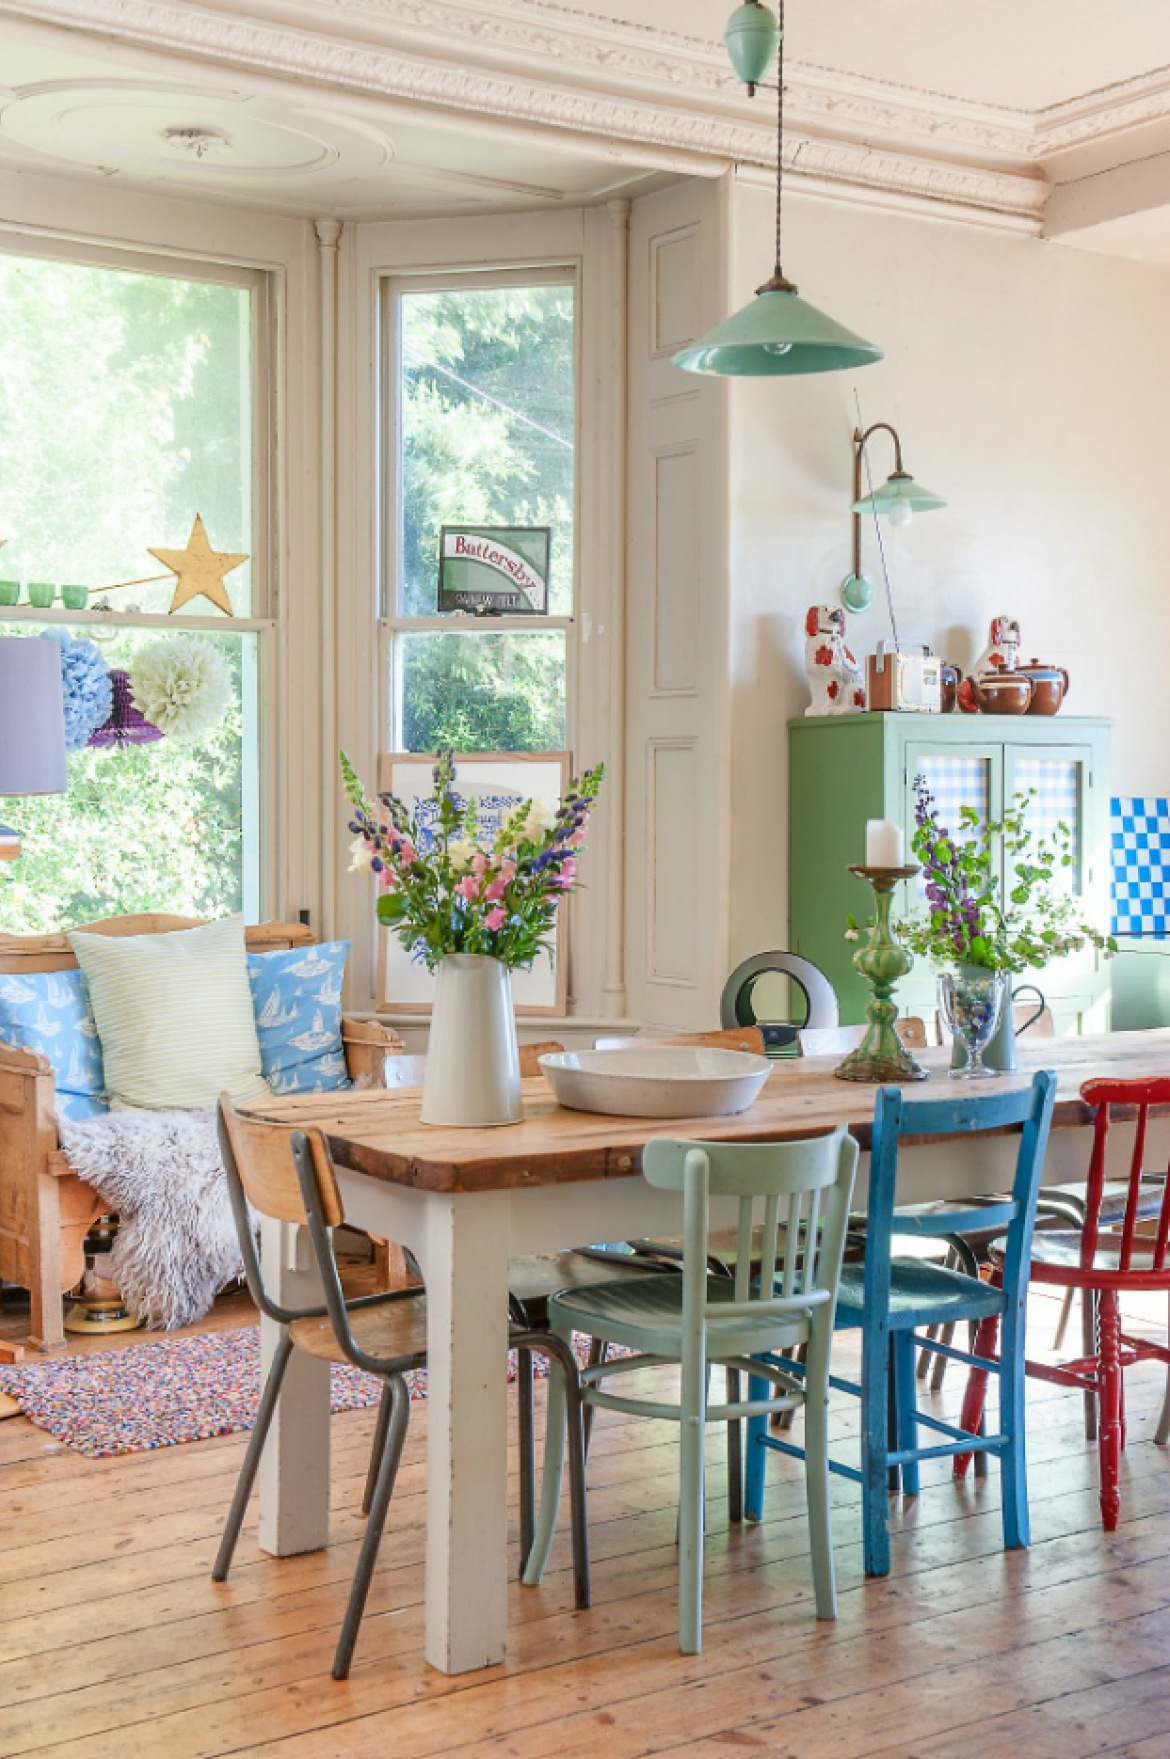 Introducing Colour Into Your Dining Room Decor Has Never Been So Easy 2